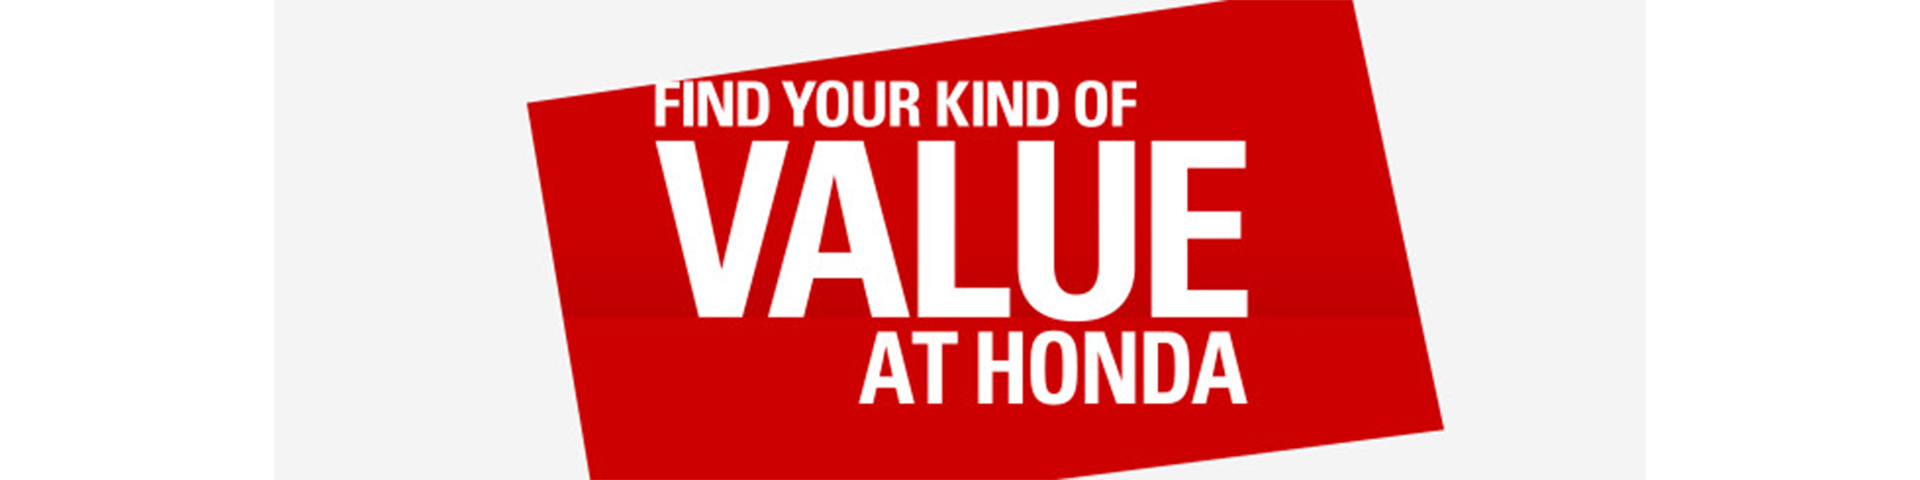 Find Your Kind Of Value At Honda